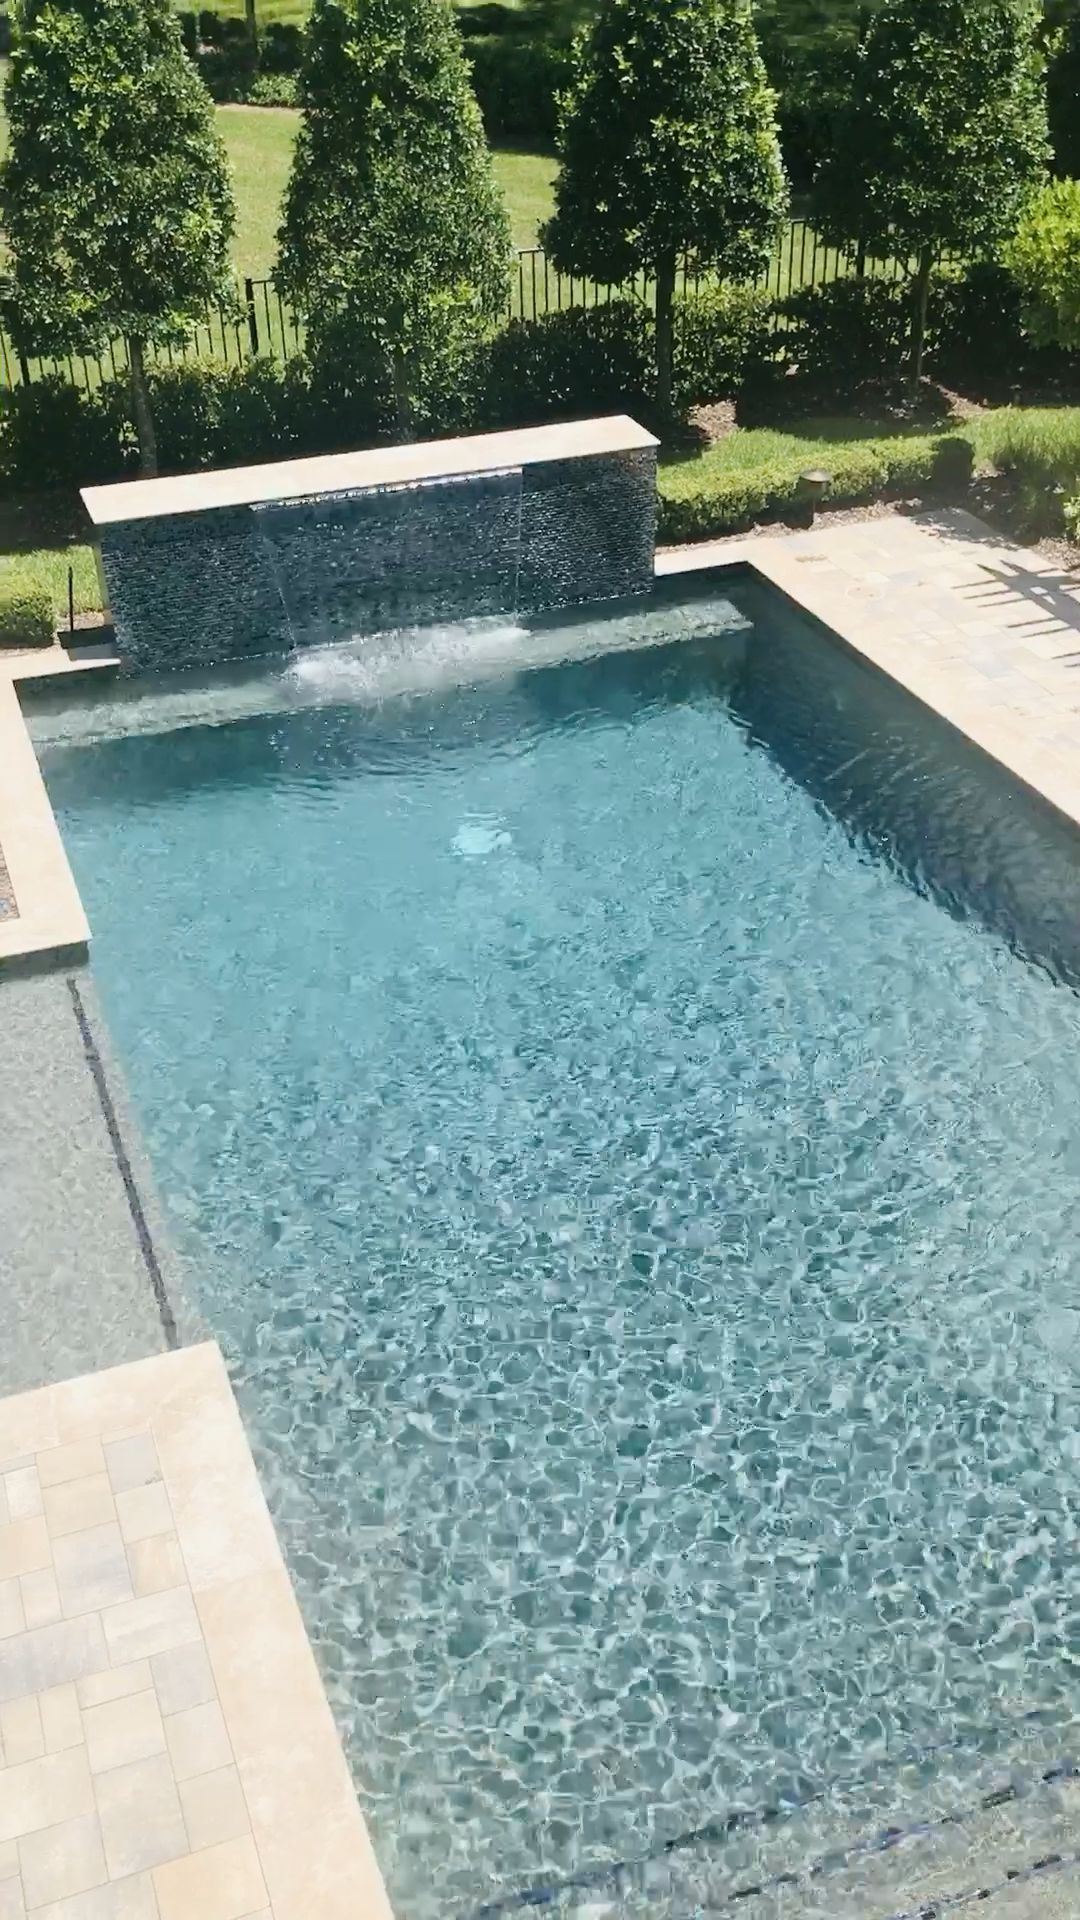 Orlando Real Estate Agent is part of Backyard pool, Luxury pool, Swimming pools backyard, Pool landscaping, Backyard, Swimming pool designs - Whether your relocating to Orlando or just moving to Orlando, I can help you find the perfect home  From Winter Garden, Lake Nona, Hamlin, to Horizon West